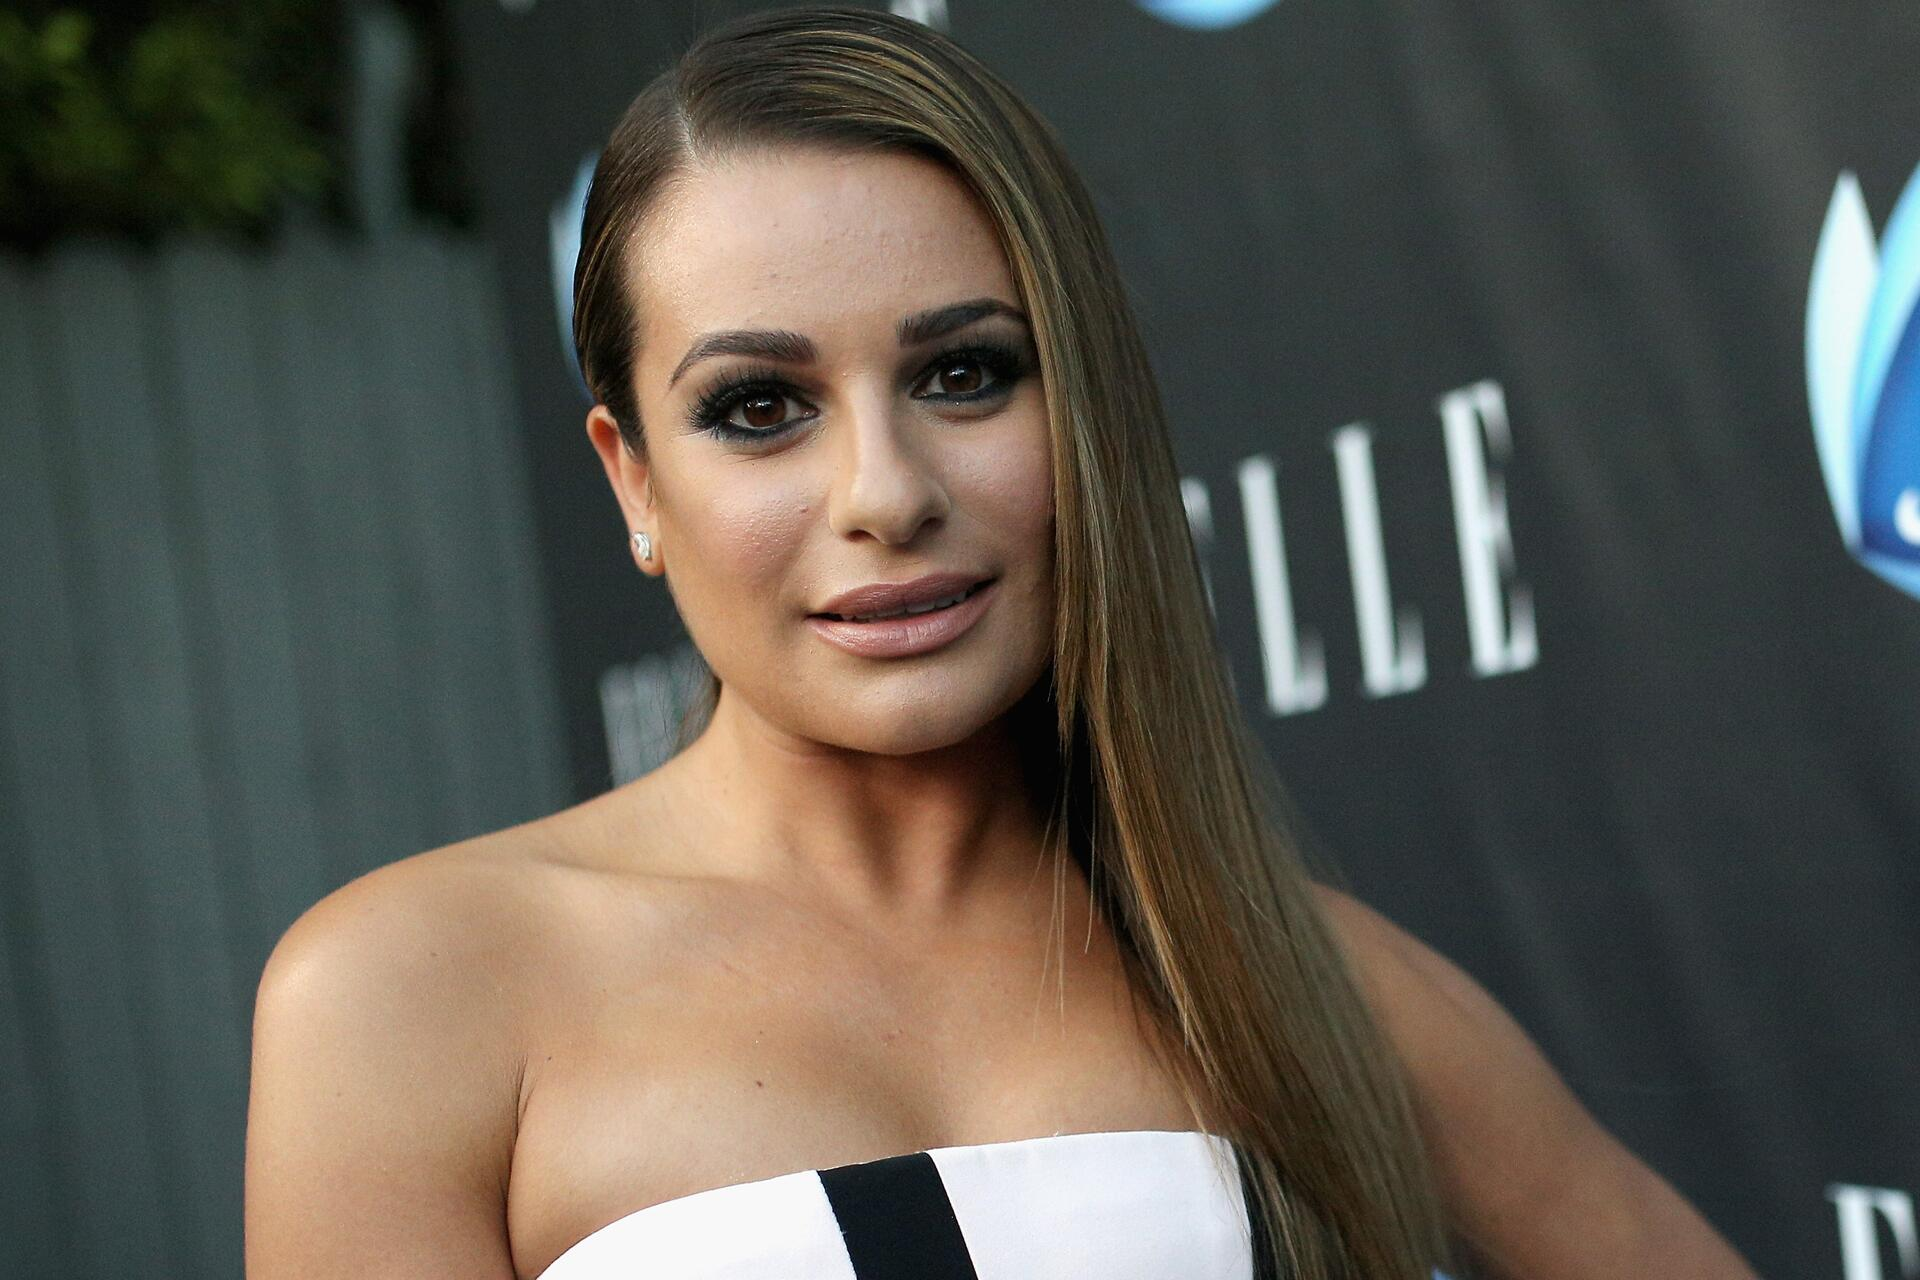 Lea Michele Kicks Off The New Year With A Cheeky Nude